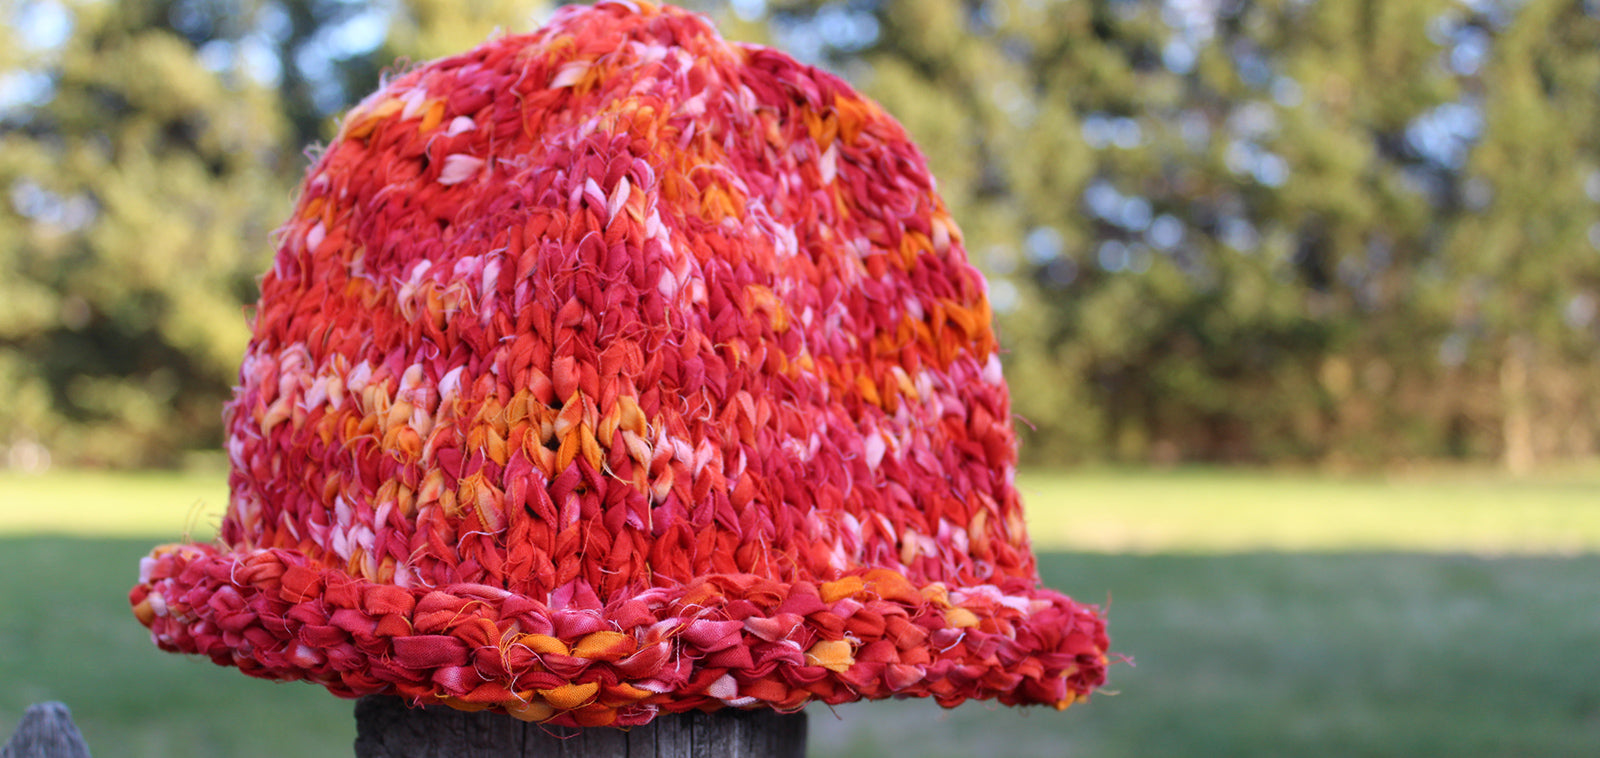 Beanie Knitted Hat